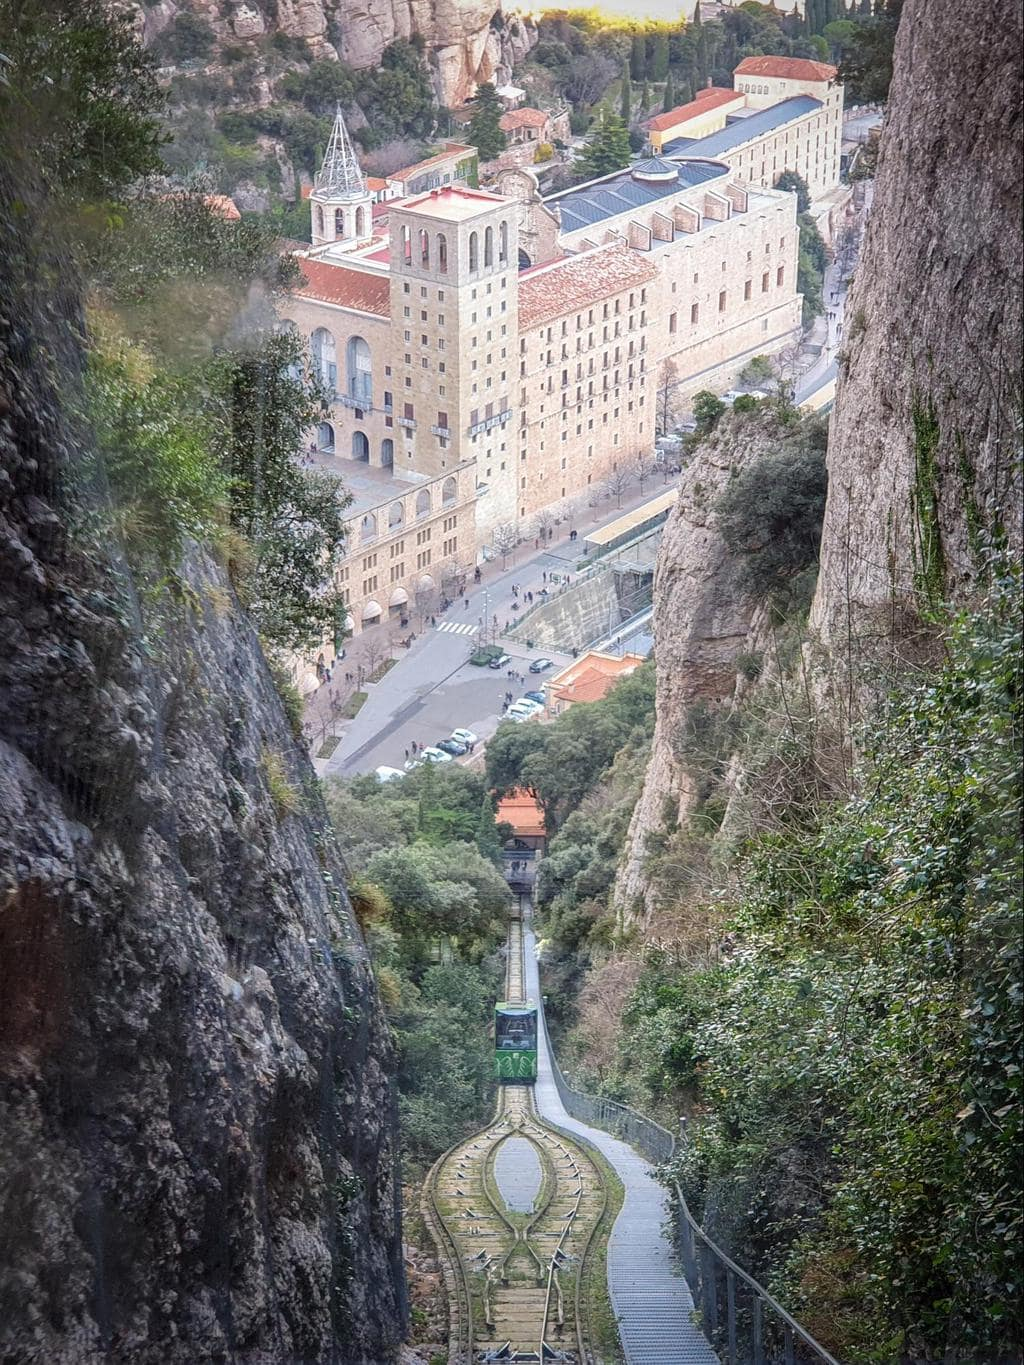 The views down from the funicular de Sant Joan